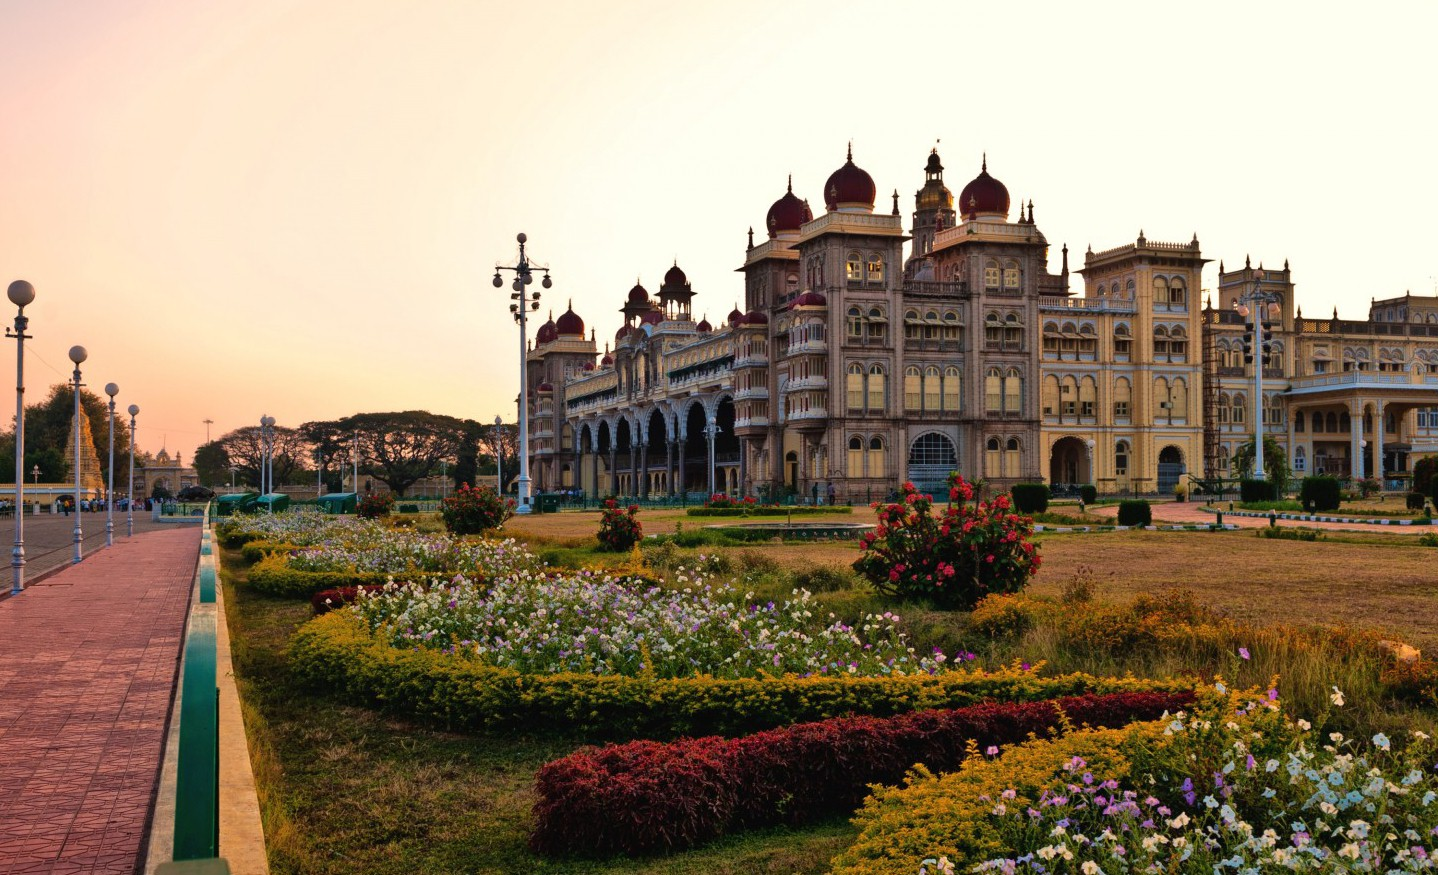 city of palaces mysore Mysuru is the former capital of the erstwhile wodeyars and the state of mysuru mysuru is also known as the city of palacesabode of untold grandeur and glory, where the rich heritage of the wodeyars is carefully preserved to this day in its magnificent palaces, gardens, broad shady avenues and sacred temples.